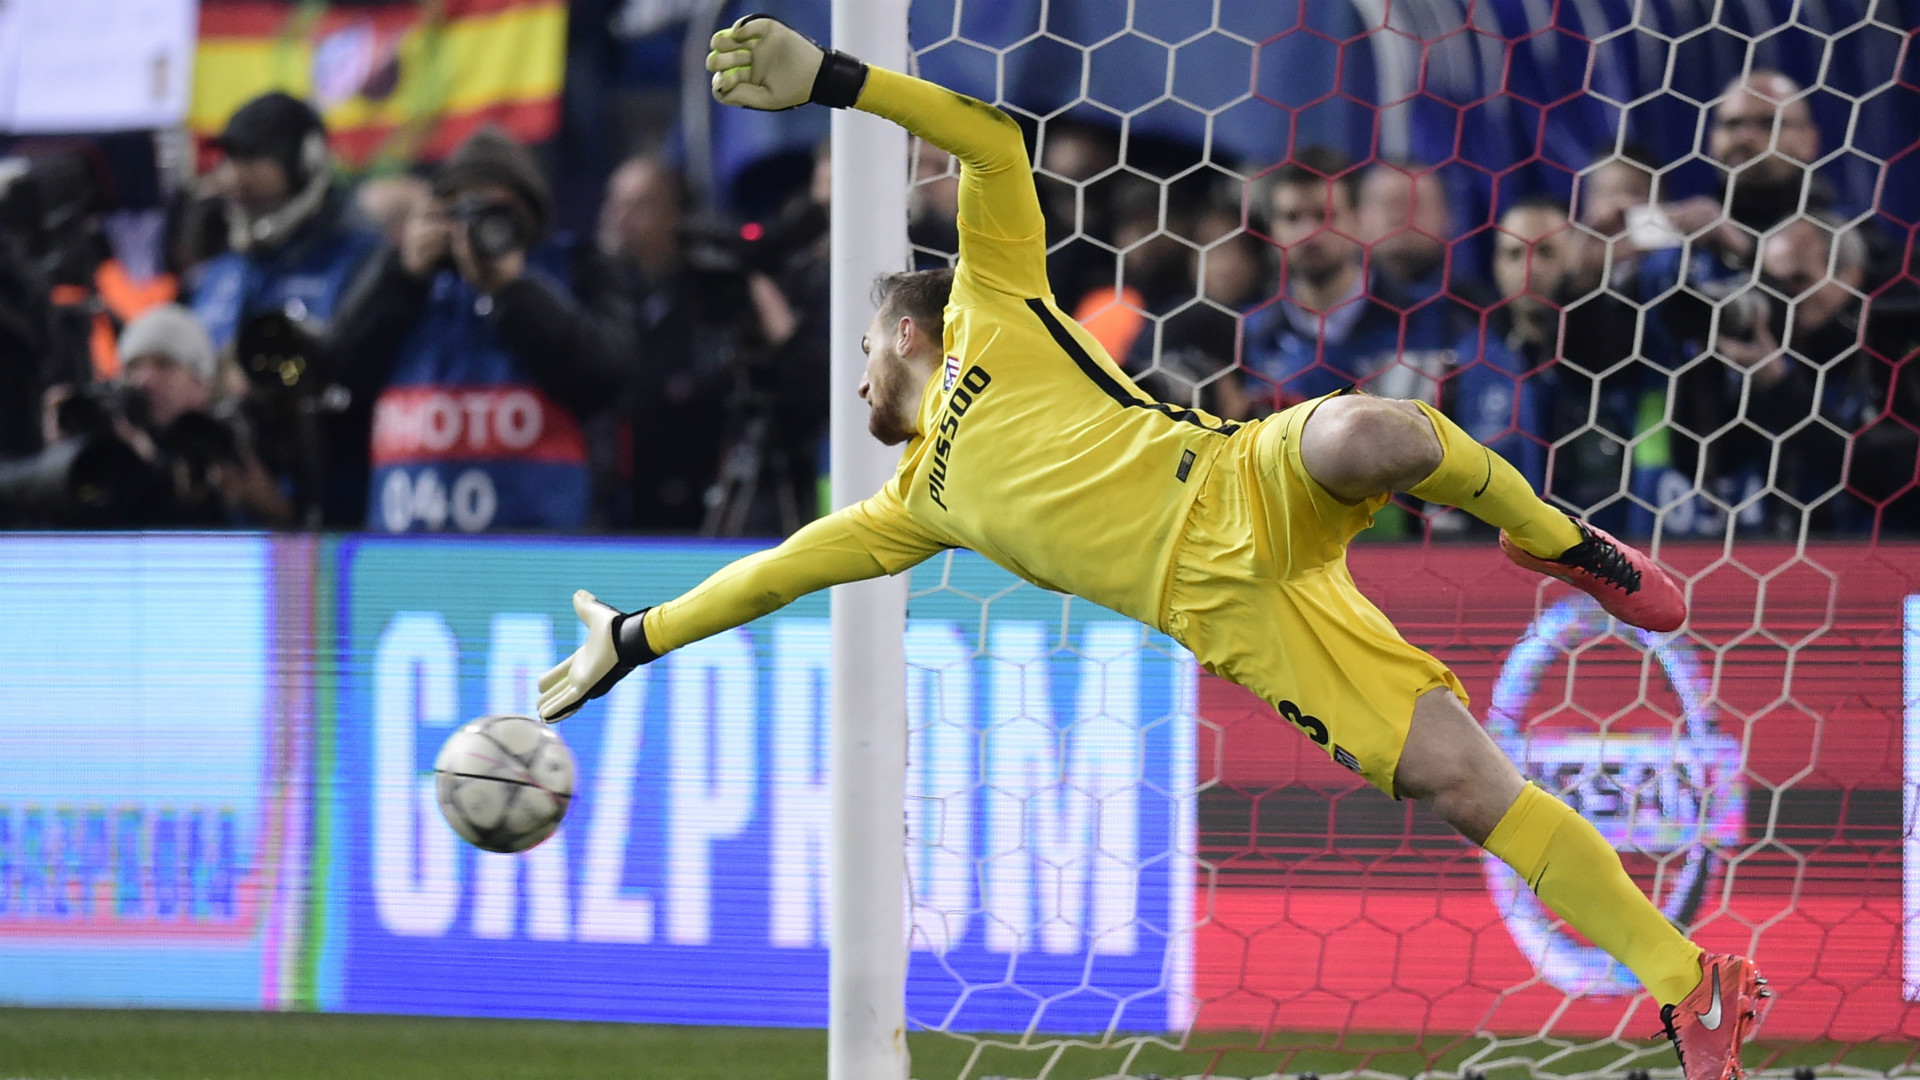 Oblak gets offer from one of Europes top teams - Goal.com